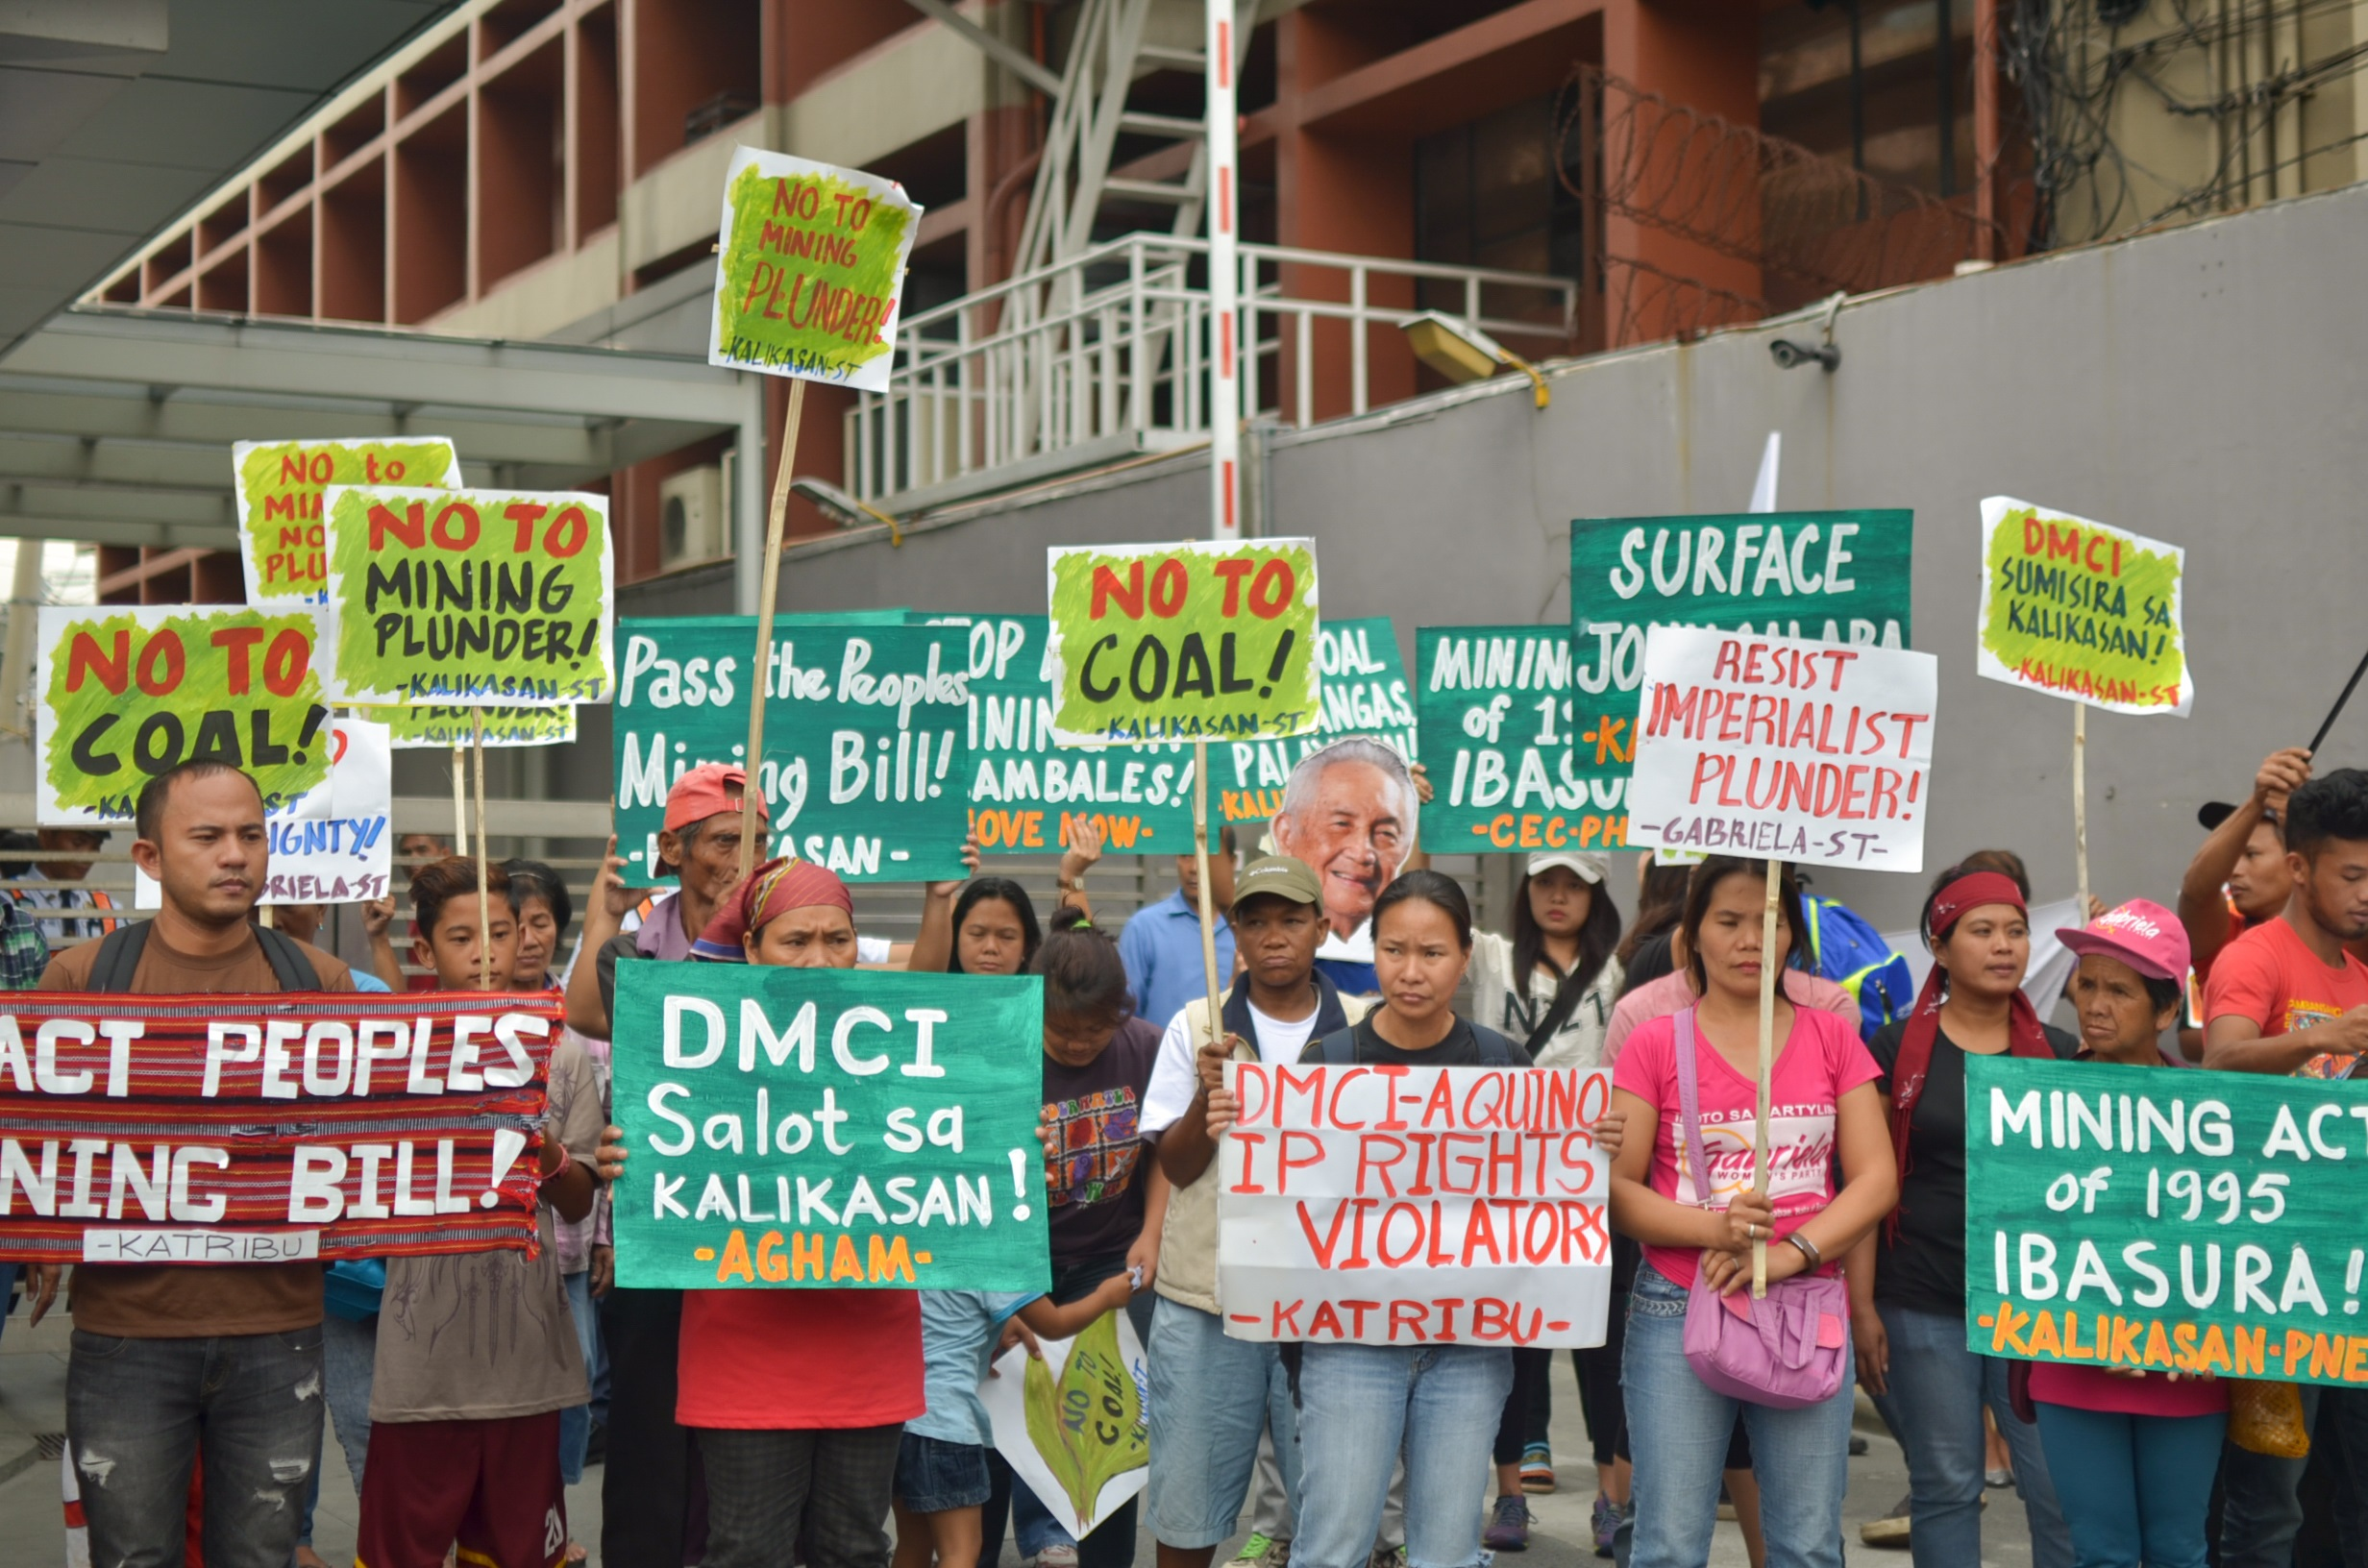 Members of environmentalists and mining-affected communities from Mindanao and Luzon joined the protest at the DMCI office in Makati City on March 3. (Photo by Carlo Manalansan/Bulatlat)